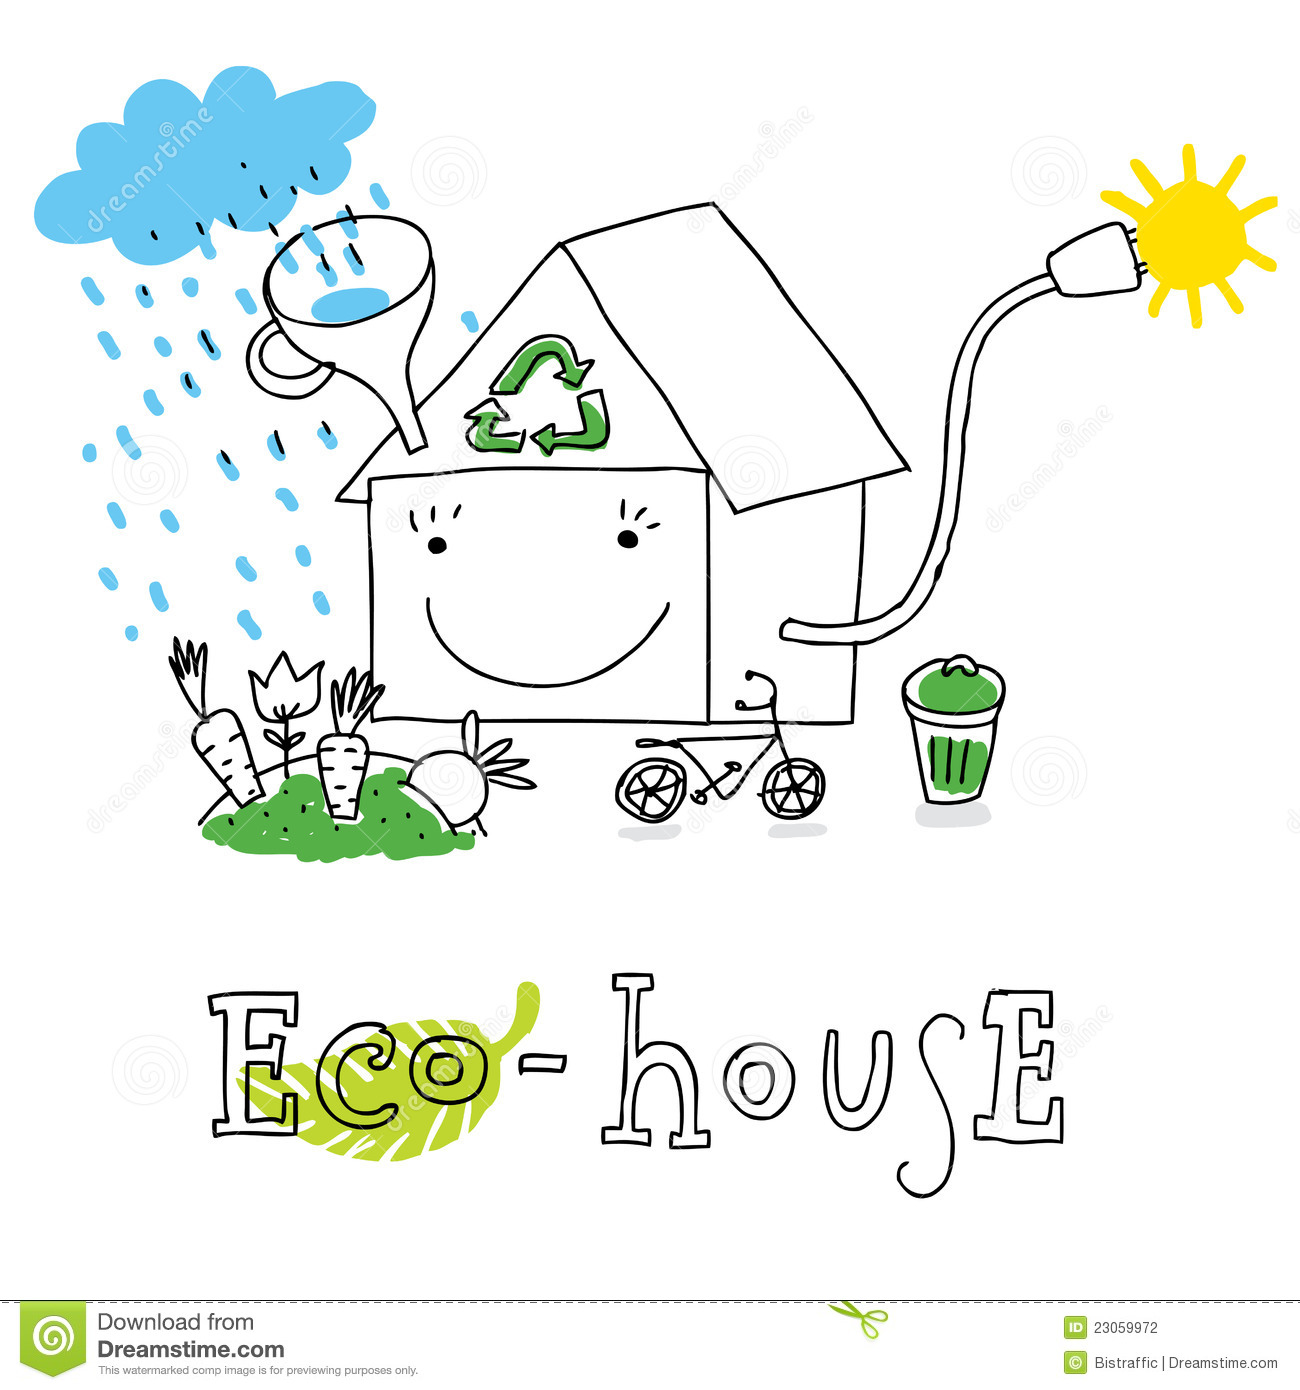 7 Empresas Que Apuestan Por Los Empaques Sustentables moreover Stock Photography Eco House Drawing Image23059972 in addition oas1s besides Royalty Free Stock Photo Ecology Energy Icon Set Image27849835 also Index. on sustainable el design